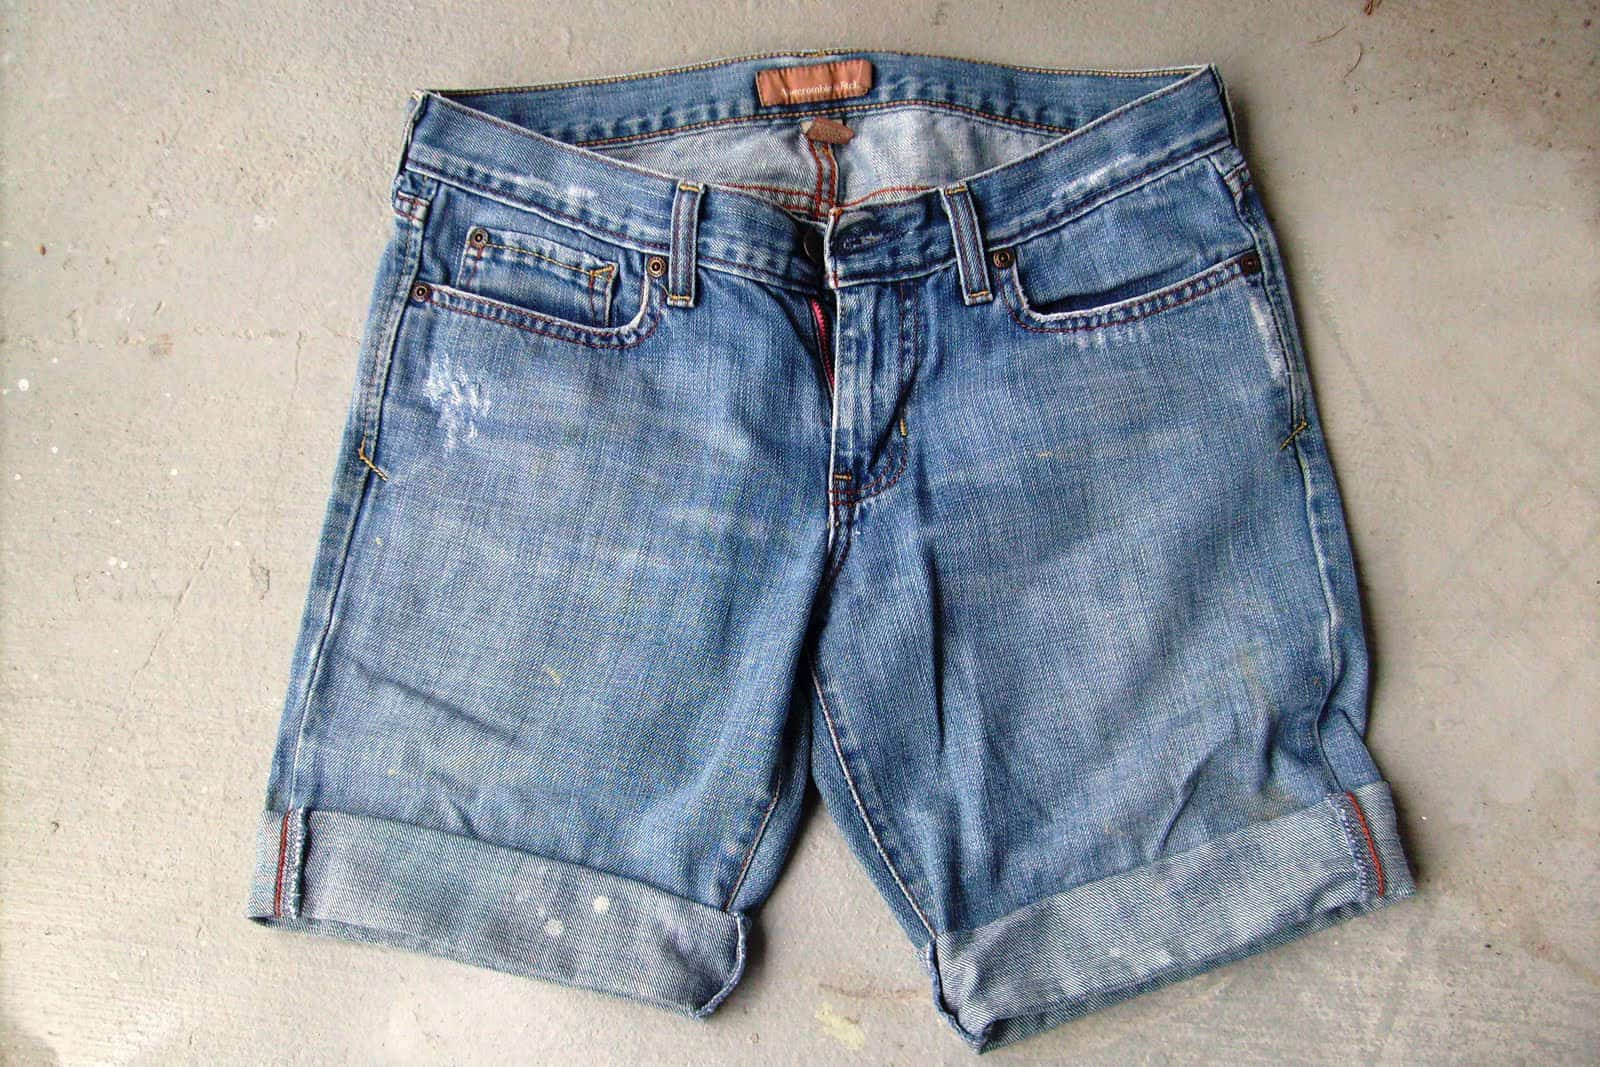 Comfy Non-Scandalous Cute Jean Shorts